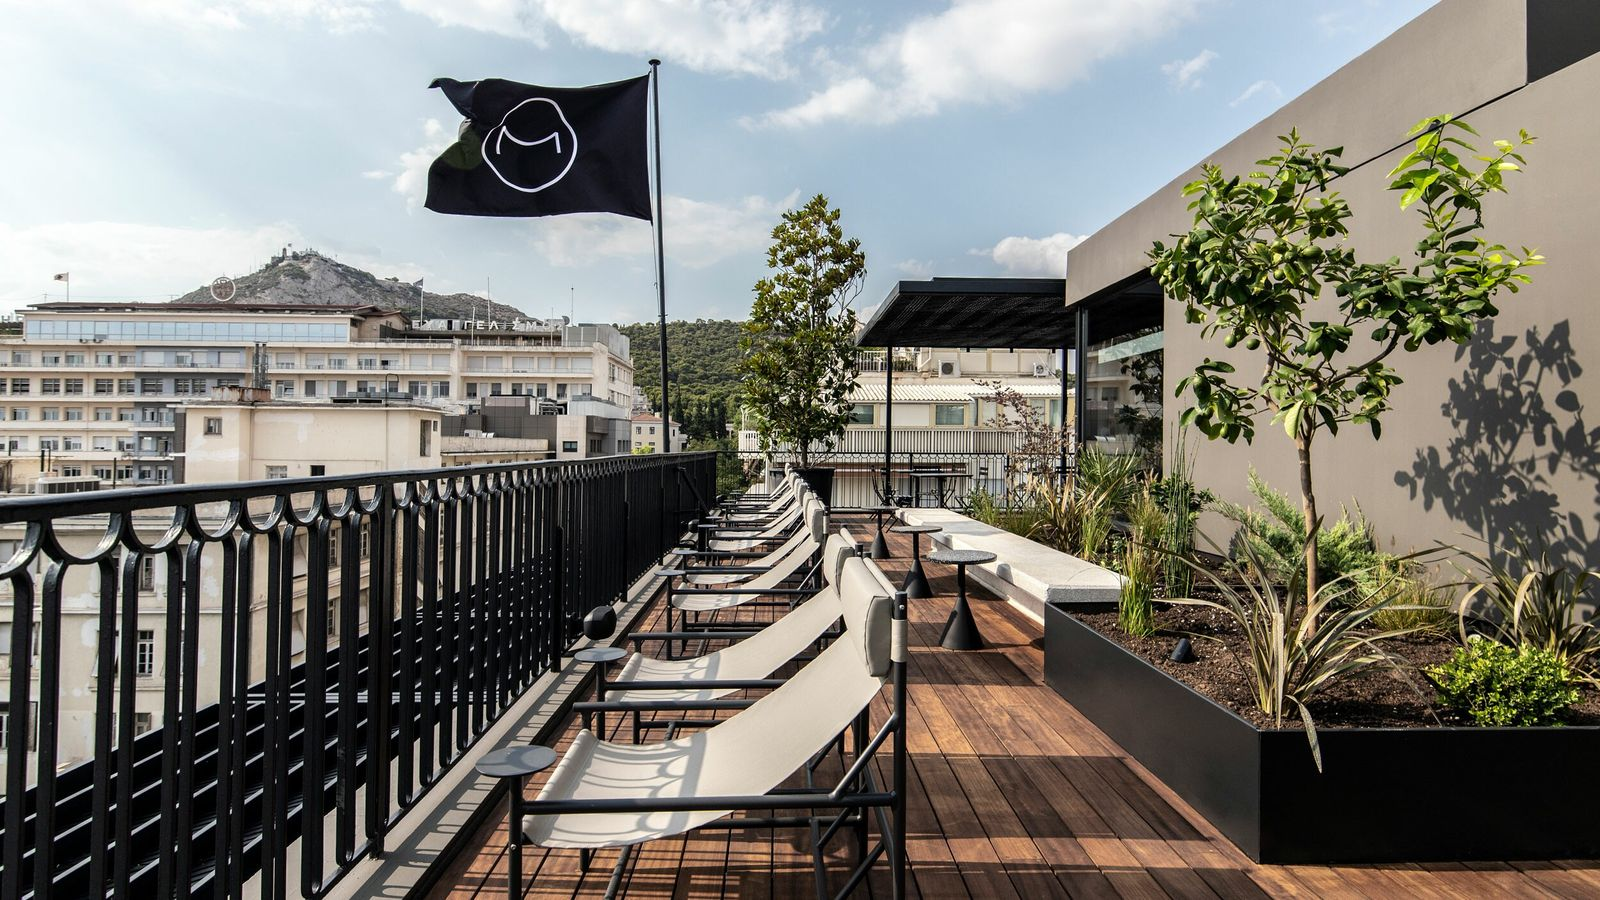 Among the new openings in the Greek capital is The Modernist Athens, where a top-floor terrace ...